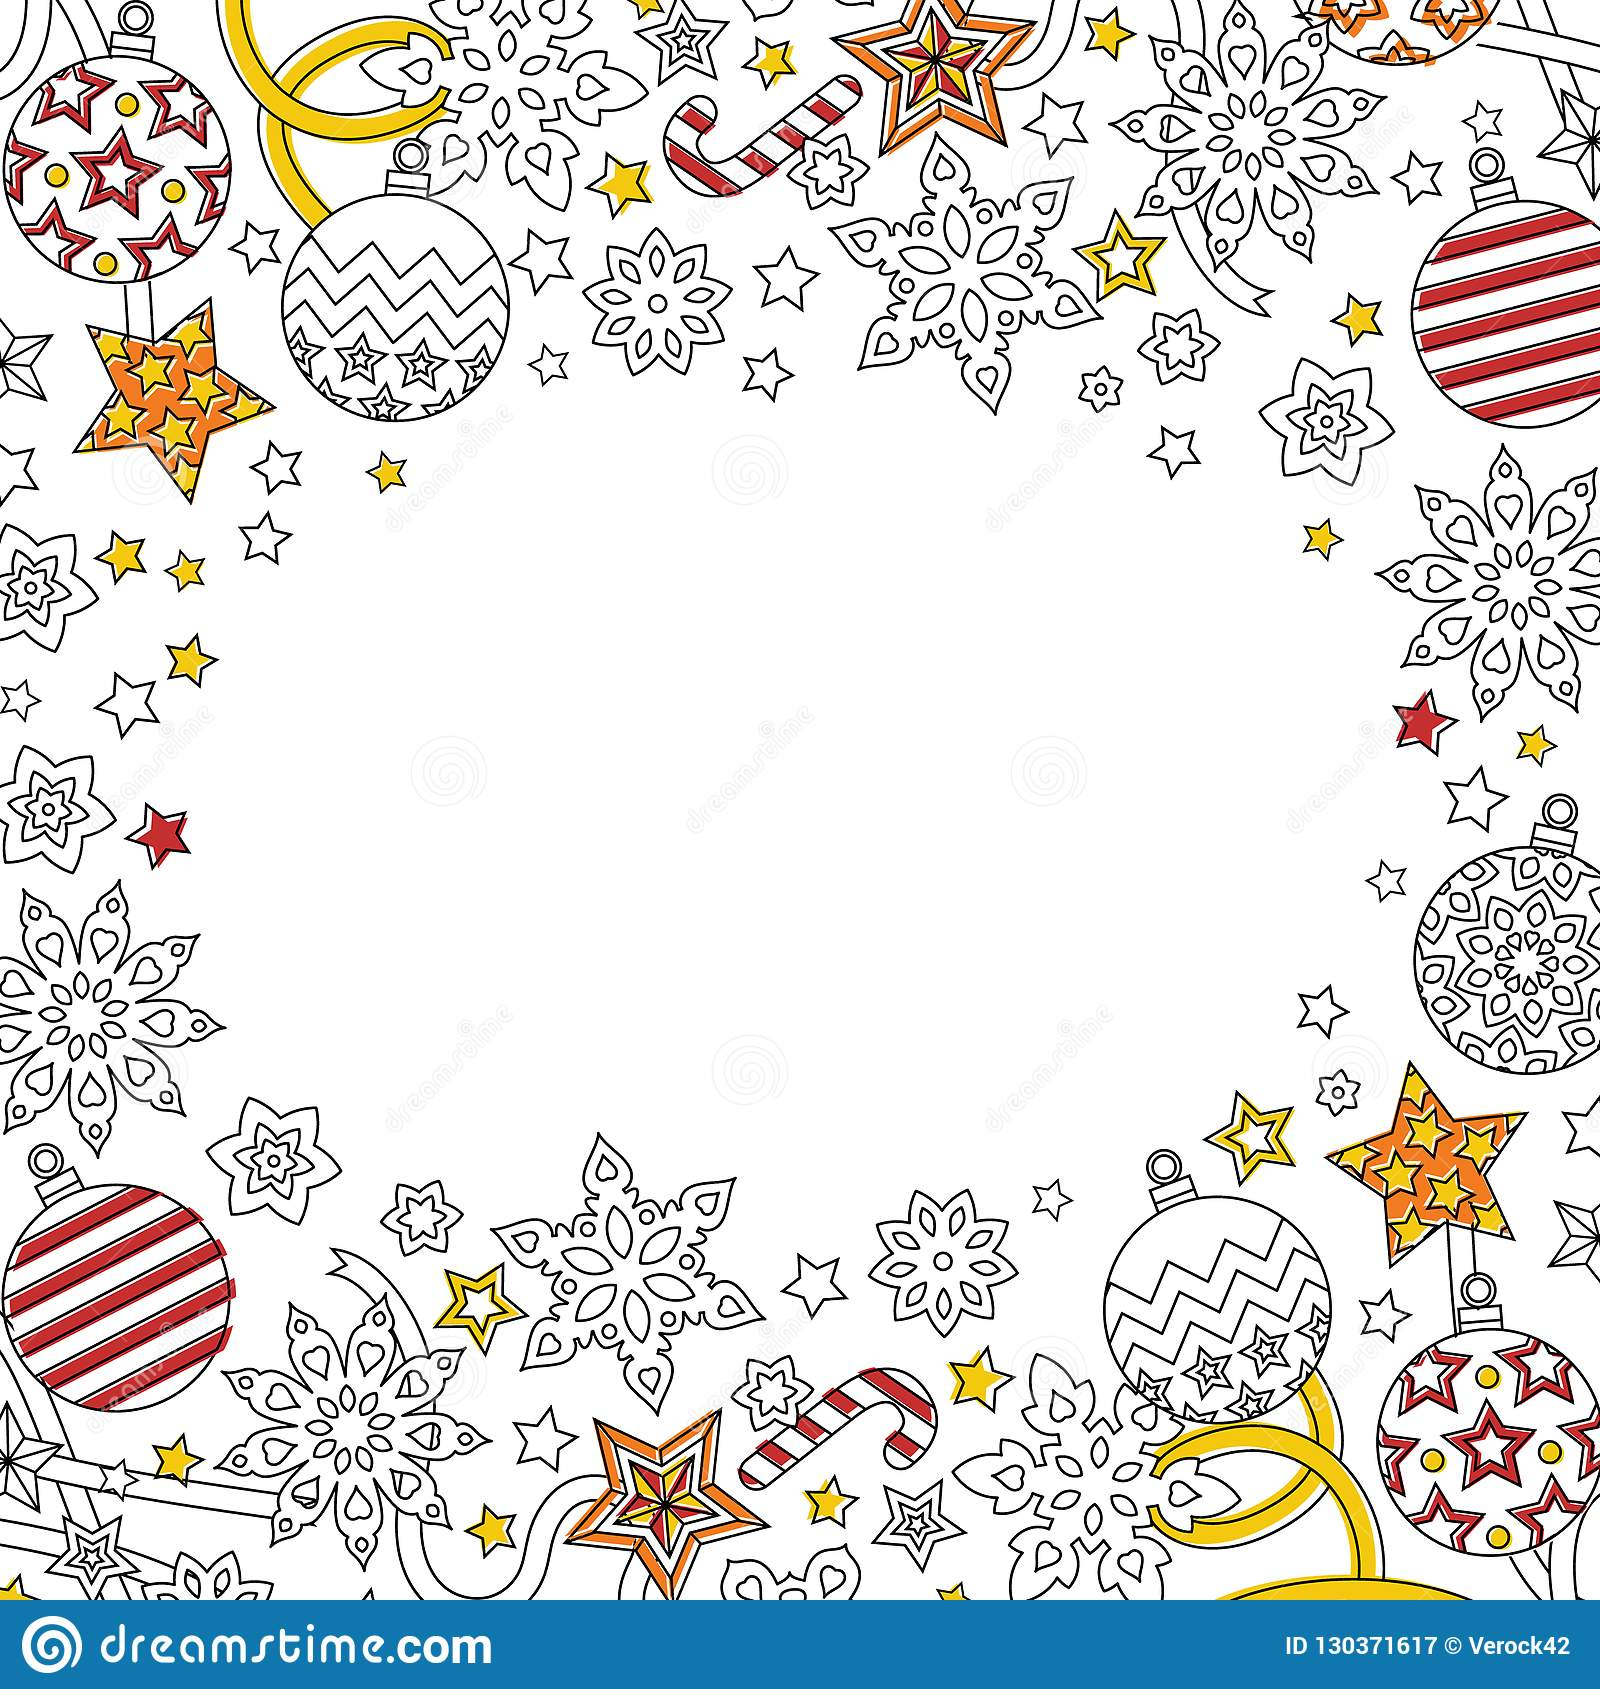 new year background with doodle snowflakes fir tree balls ribbon decorative border